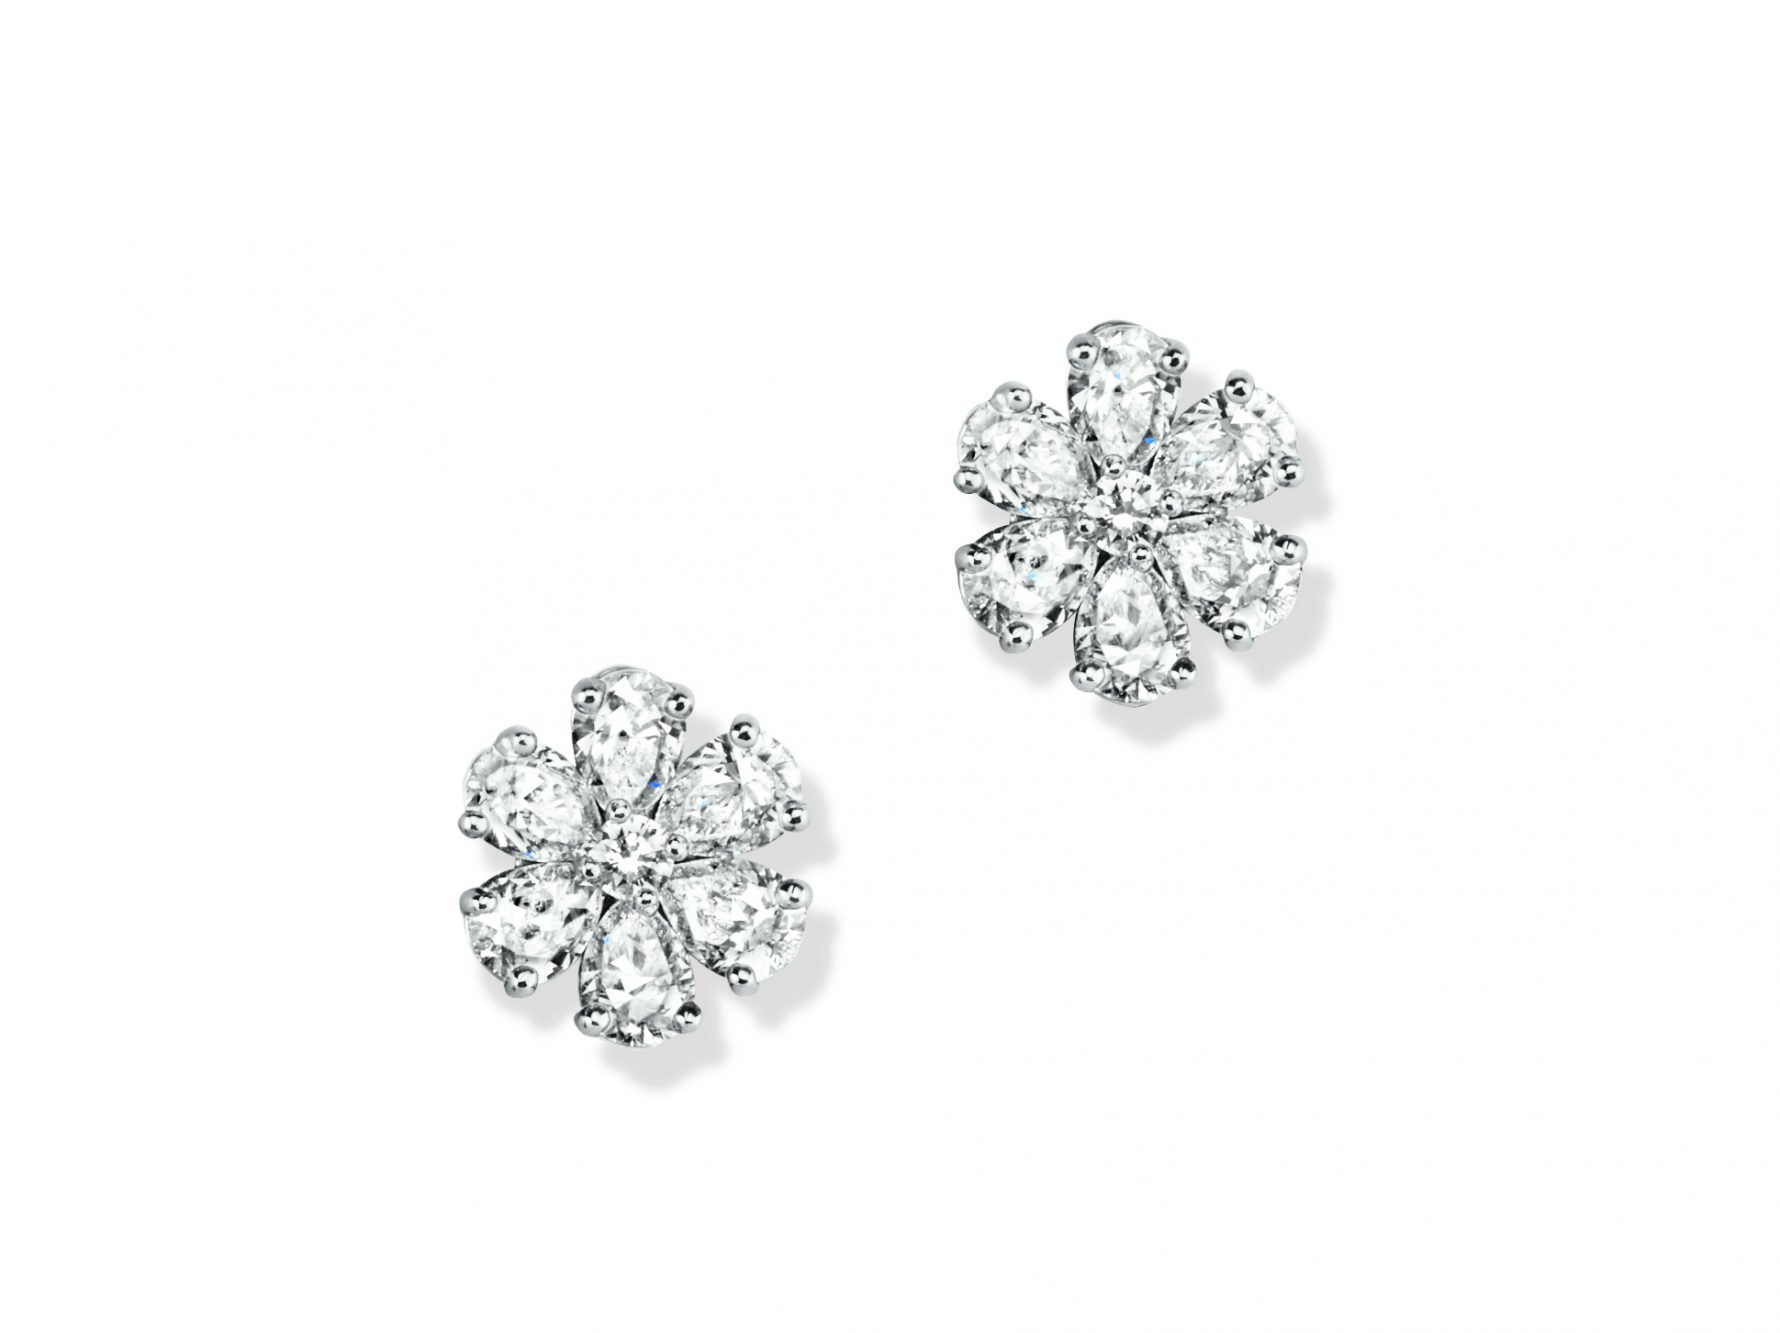 Forget-Me-Not by Harry Winston earstuds